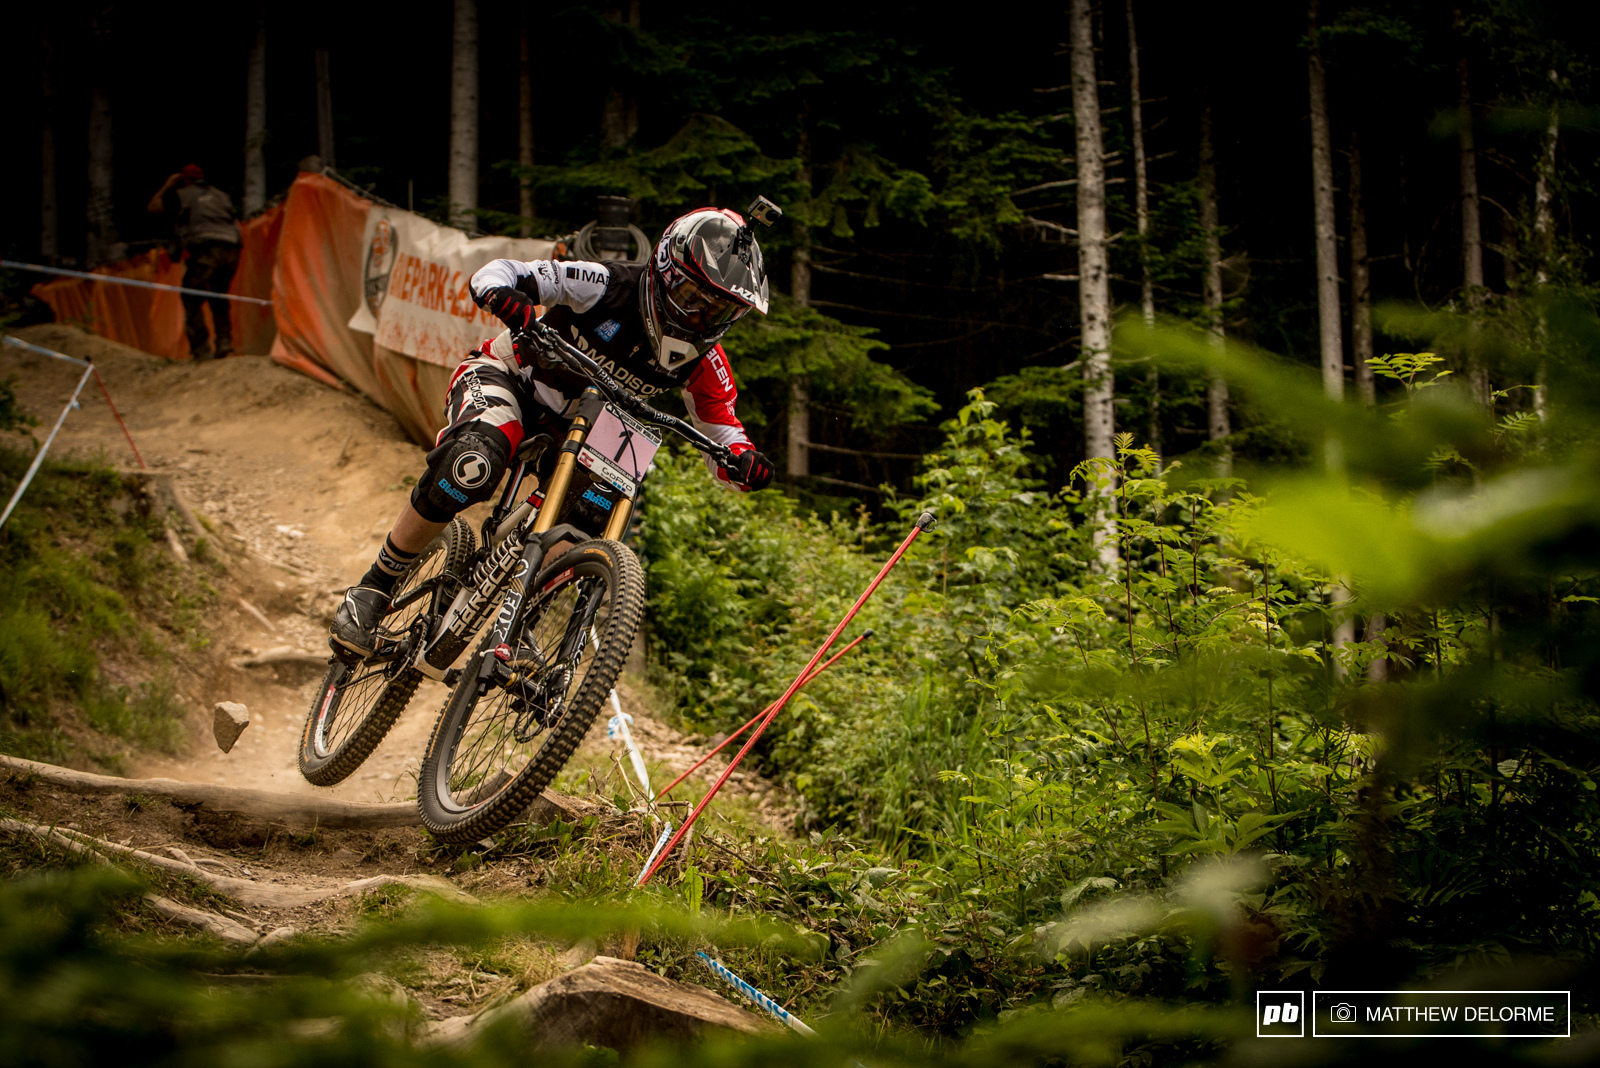 Manon Carpenter with another win 2.699 seconds up on Rachel Atherton. A nice way to finish after a flat cost her a win last week.